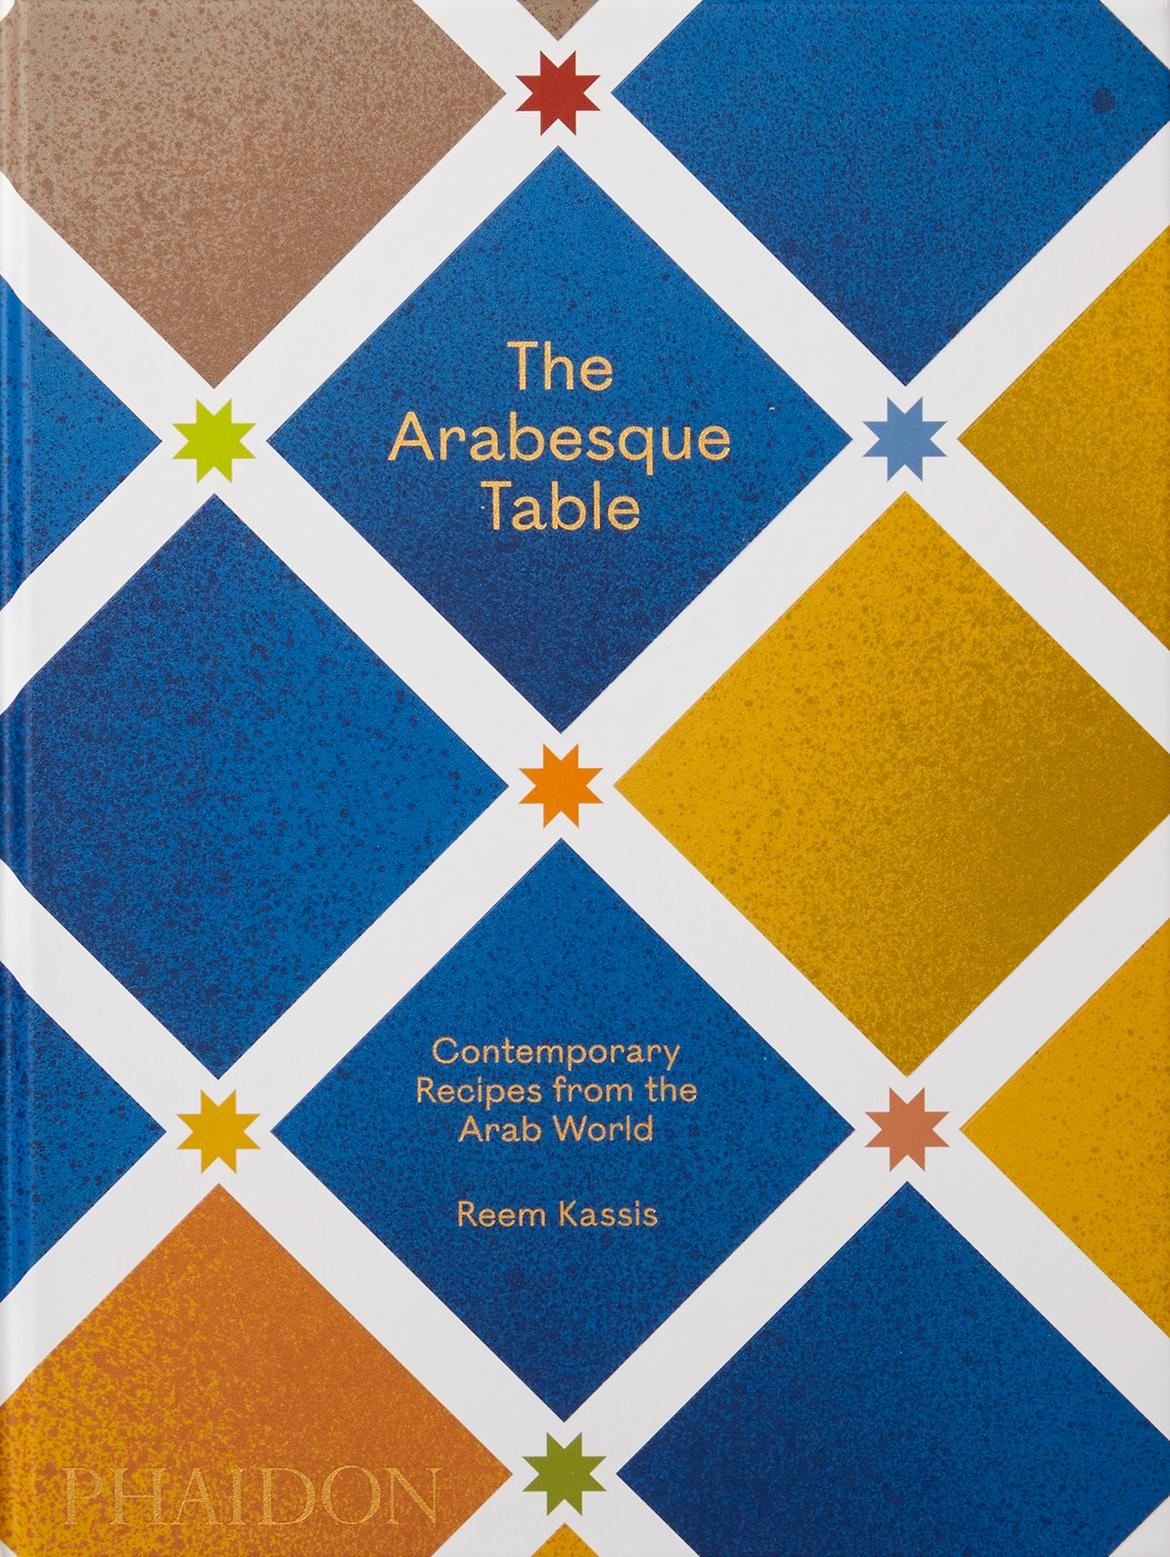 The Arabesque Table by Reem Kassis